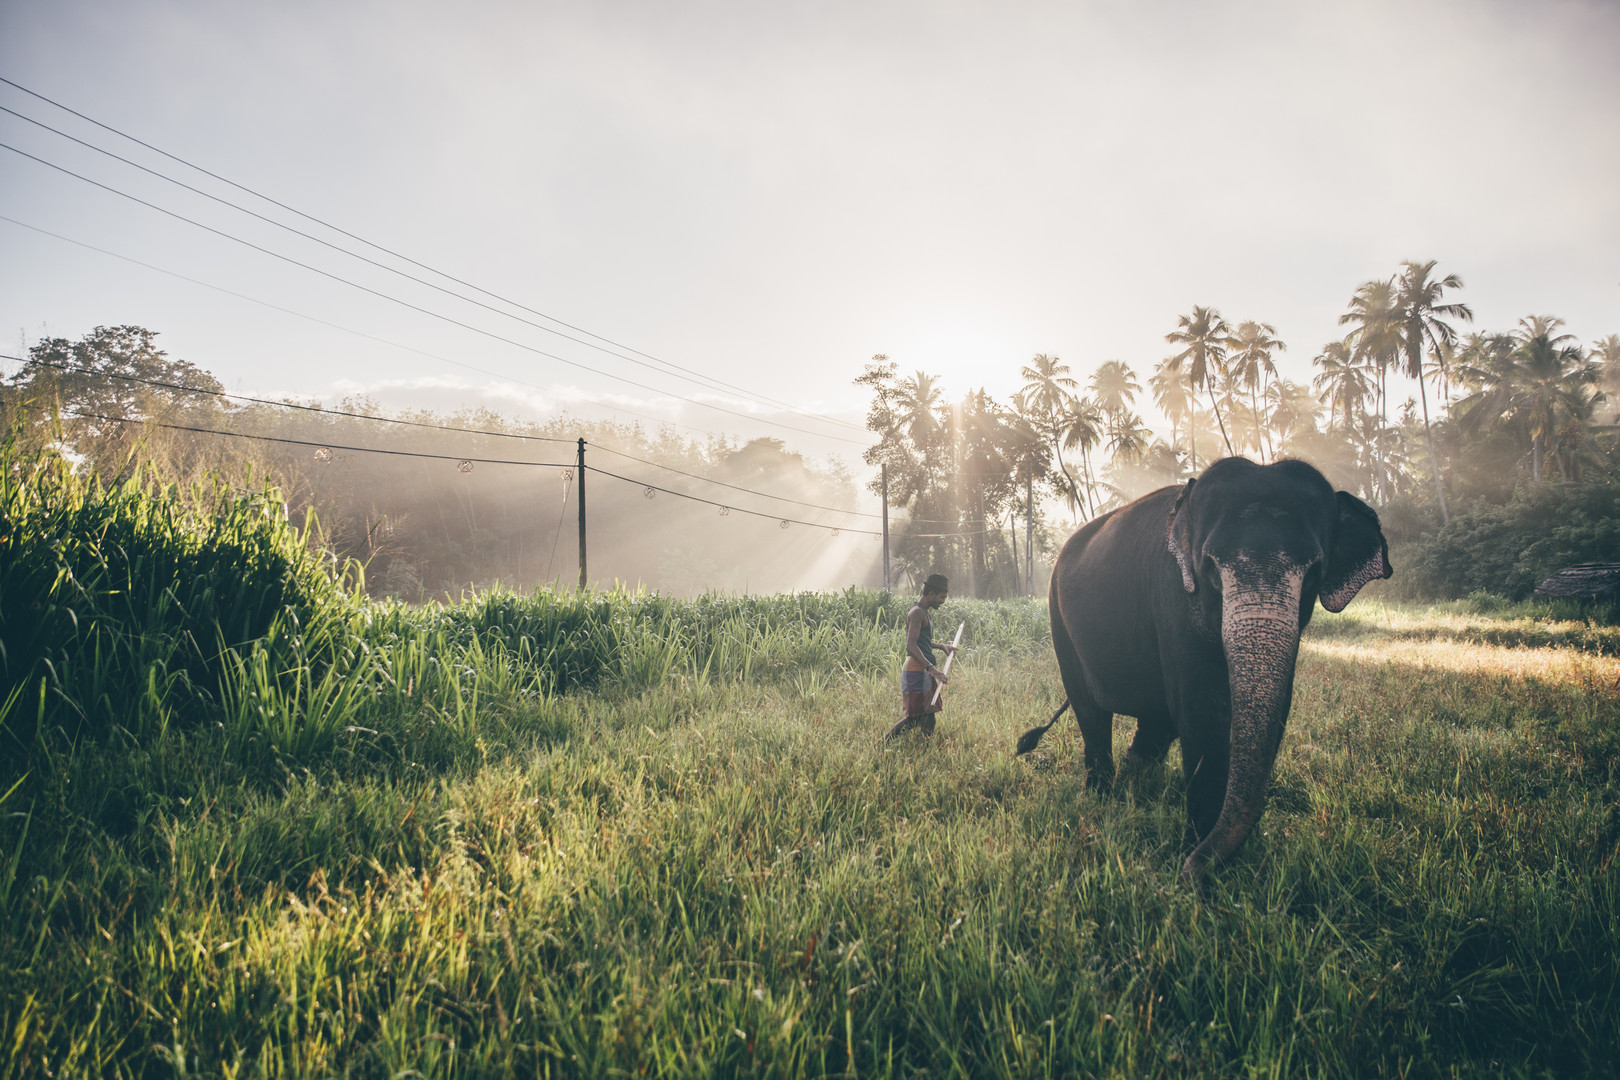 Elephant_Foundation_Sri_Lanka_2019_29.jp